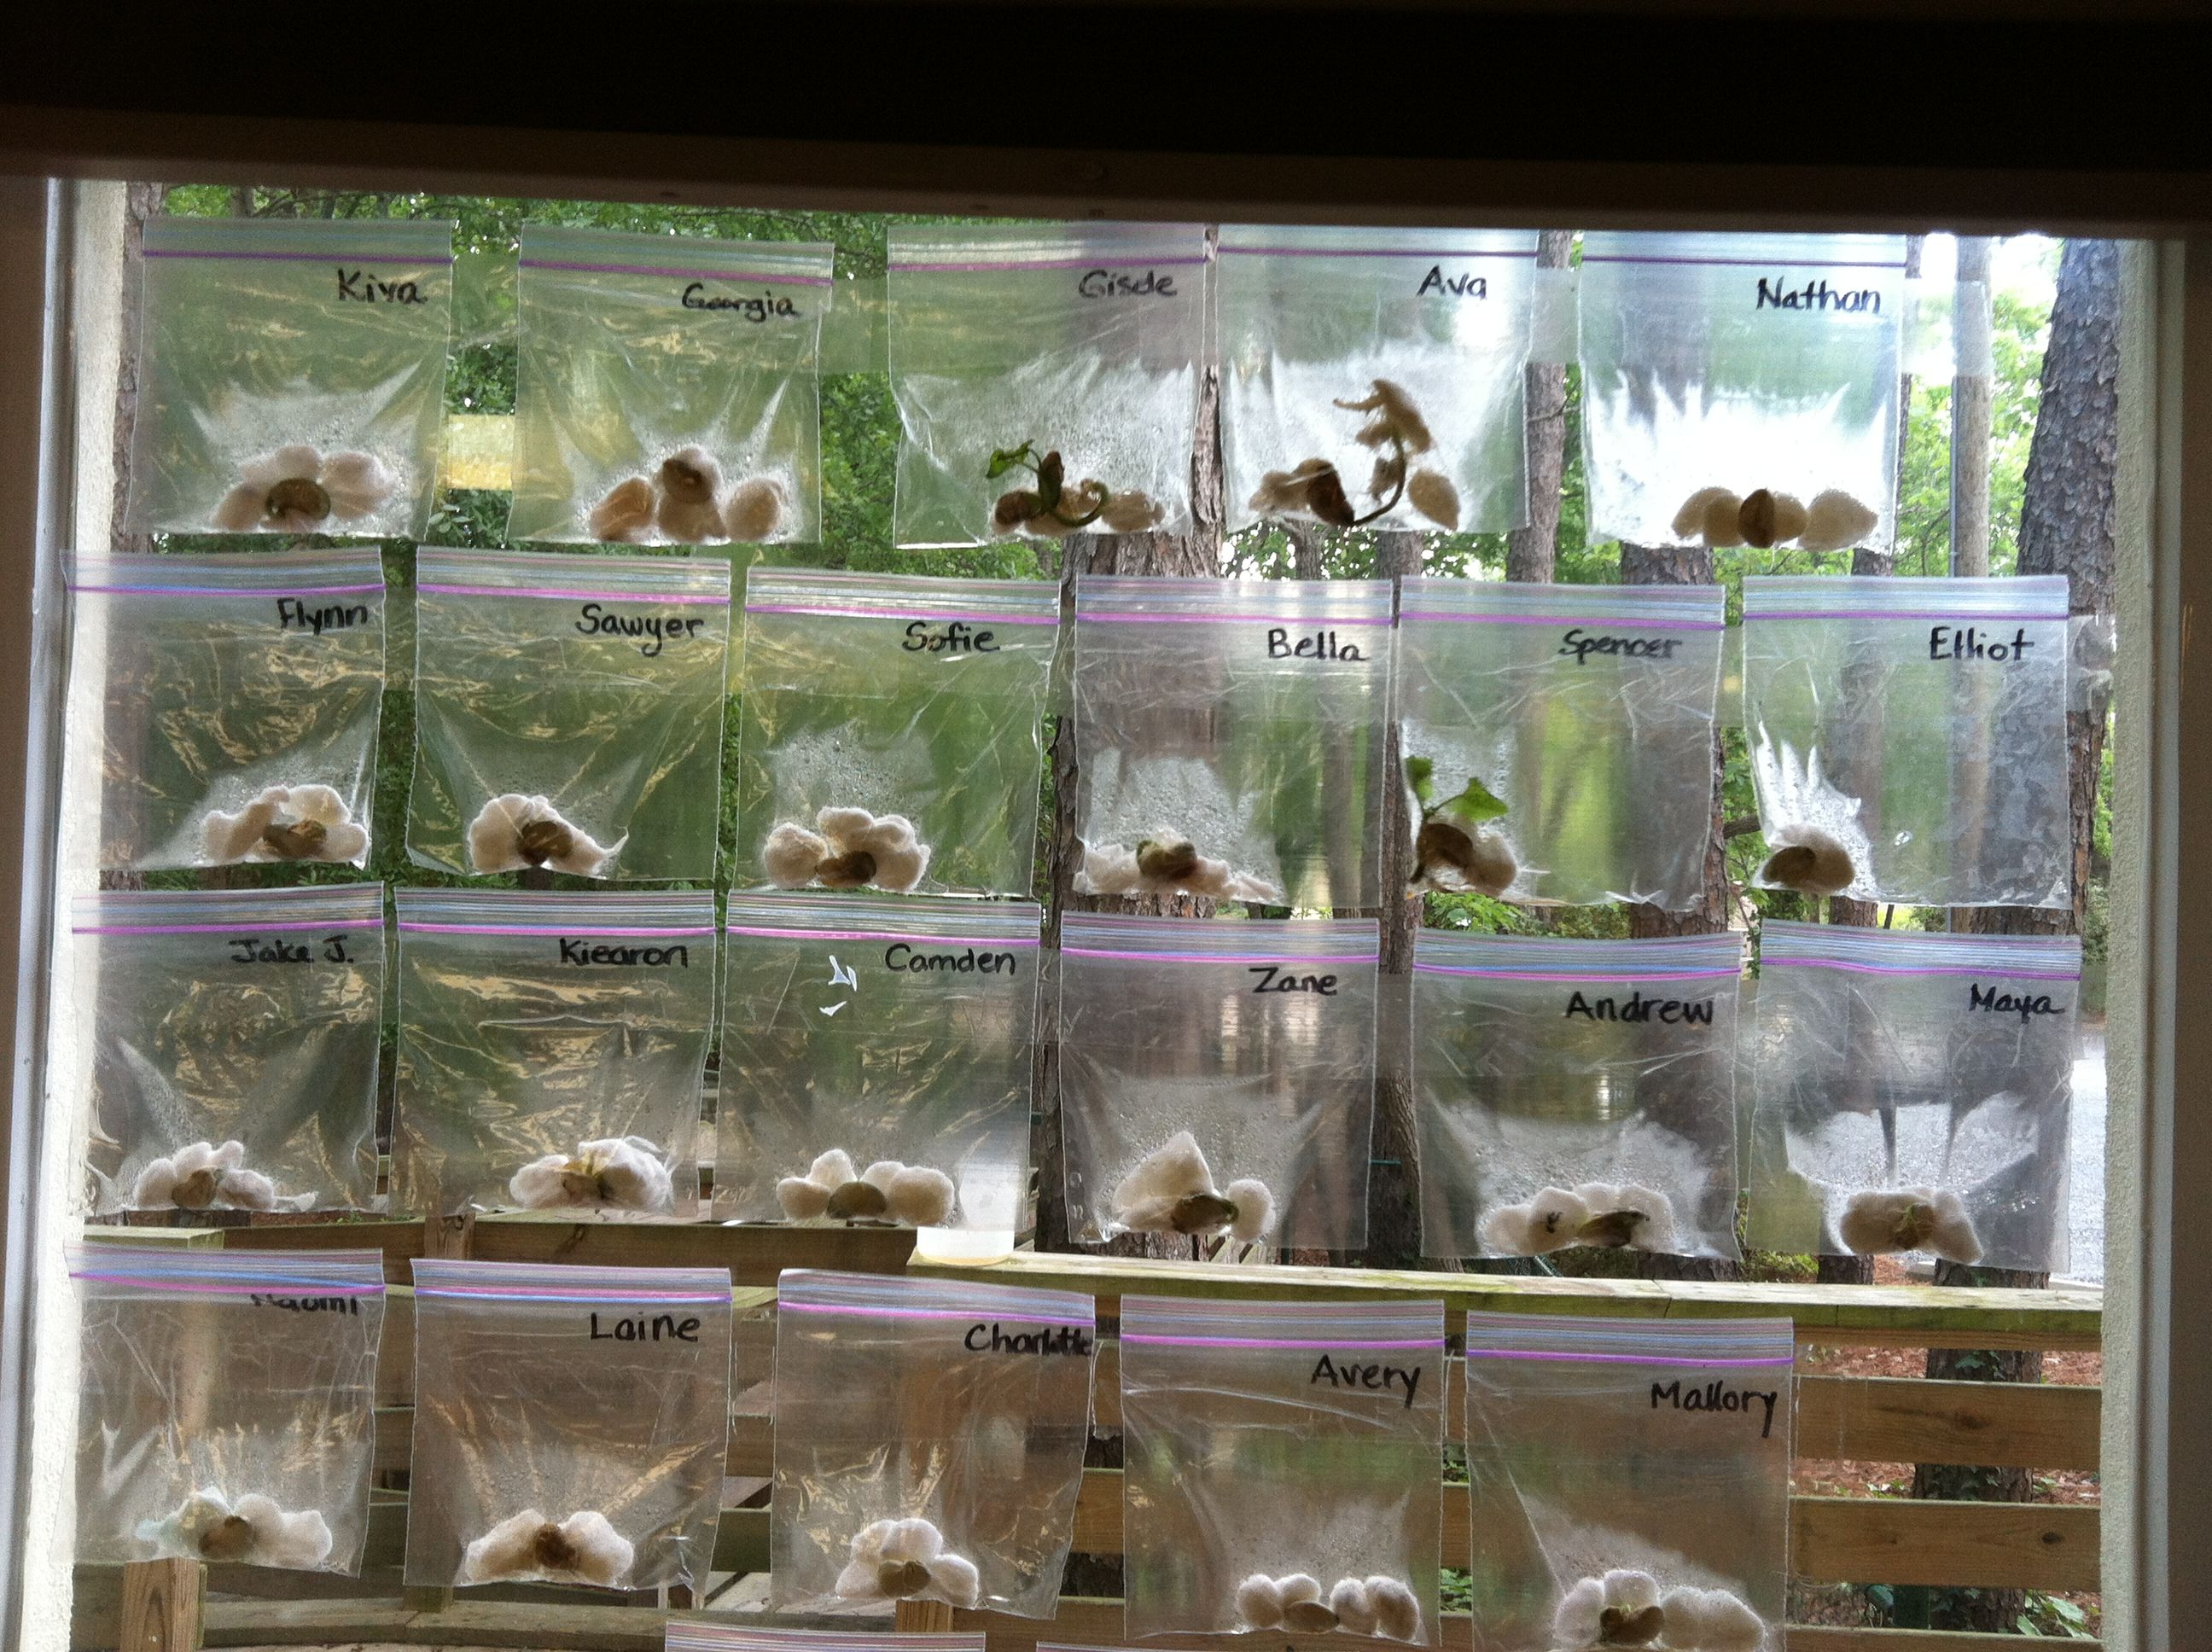 Lima Beans Growing In Ziploc Bags Taped To The Window For Sunlight Keeps Them From Little Hands